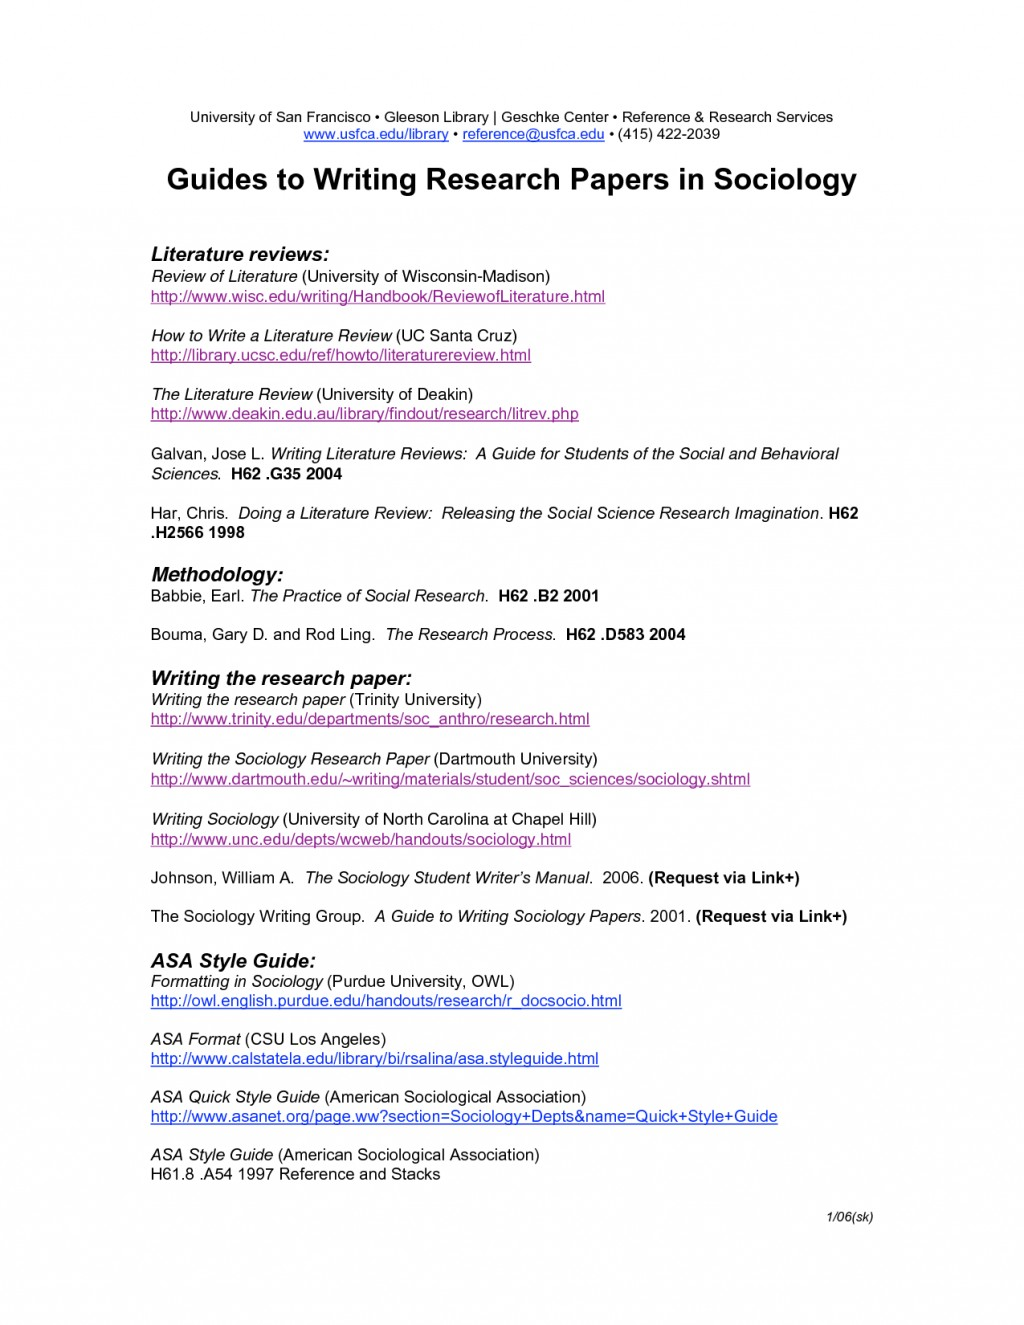 026 Asa Format Research Paper Example Sample For Sociology 135604 Singular Large